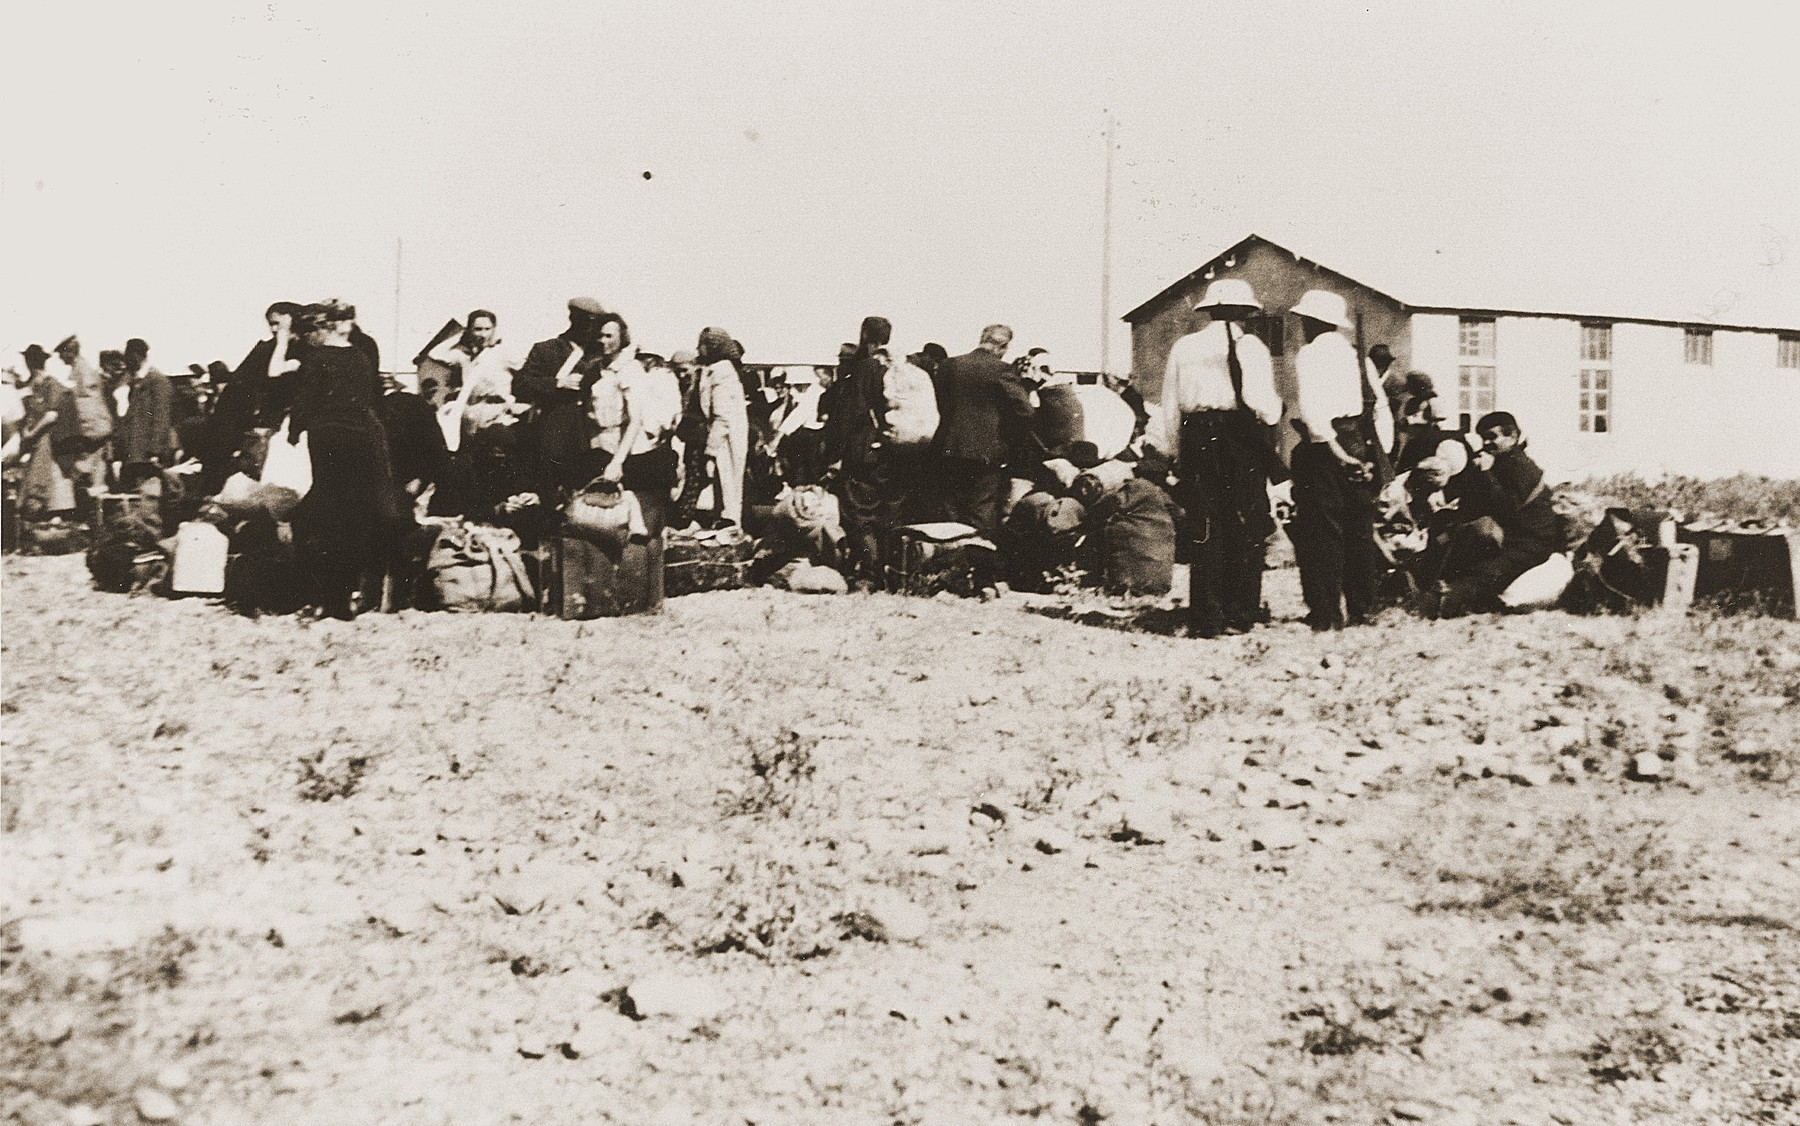 Jews await deportation from the Rivesaltes internment camp.